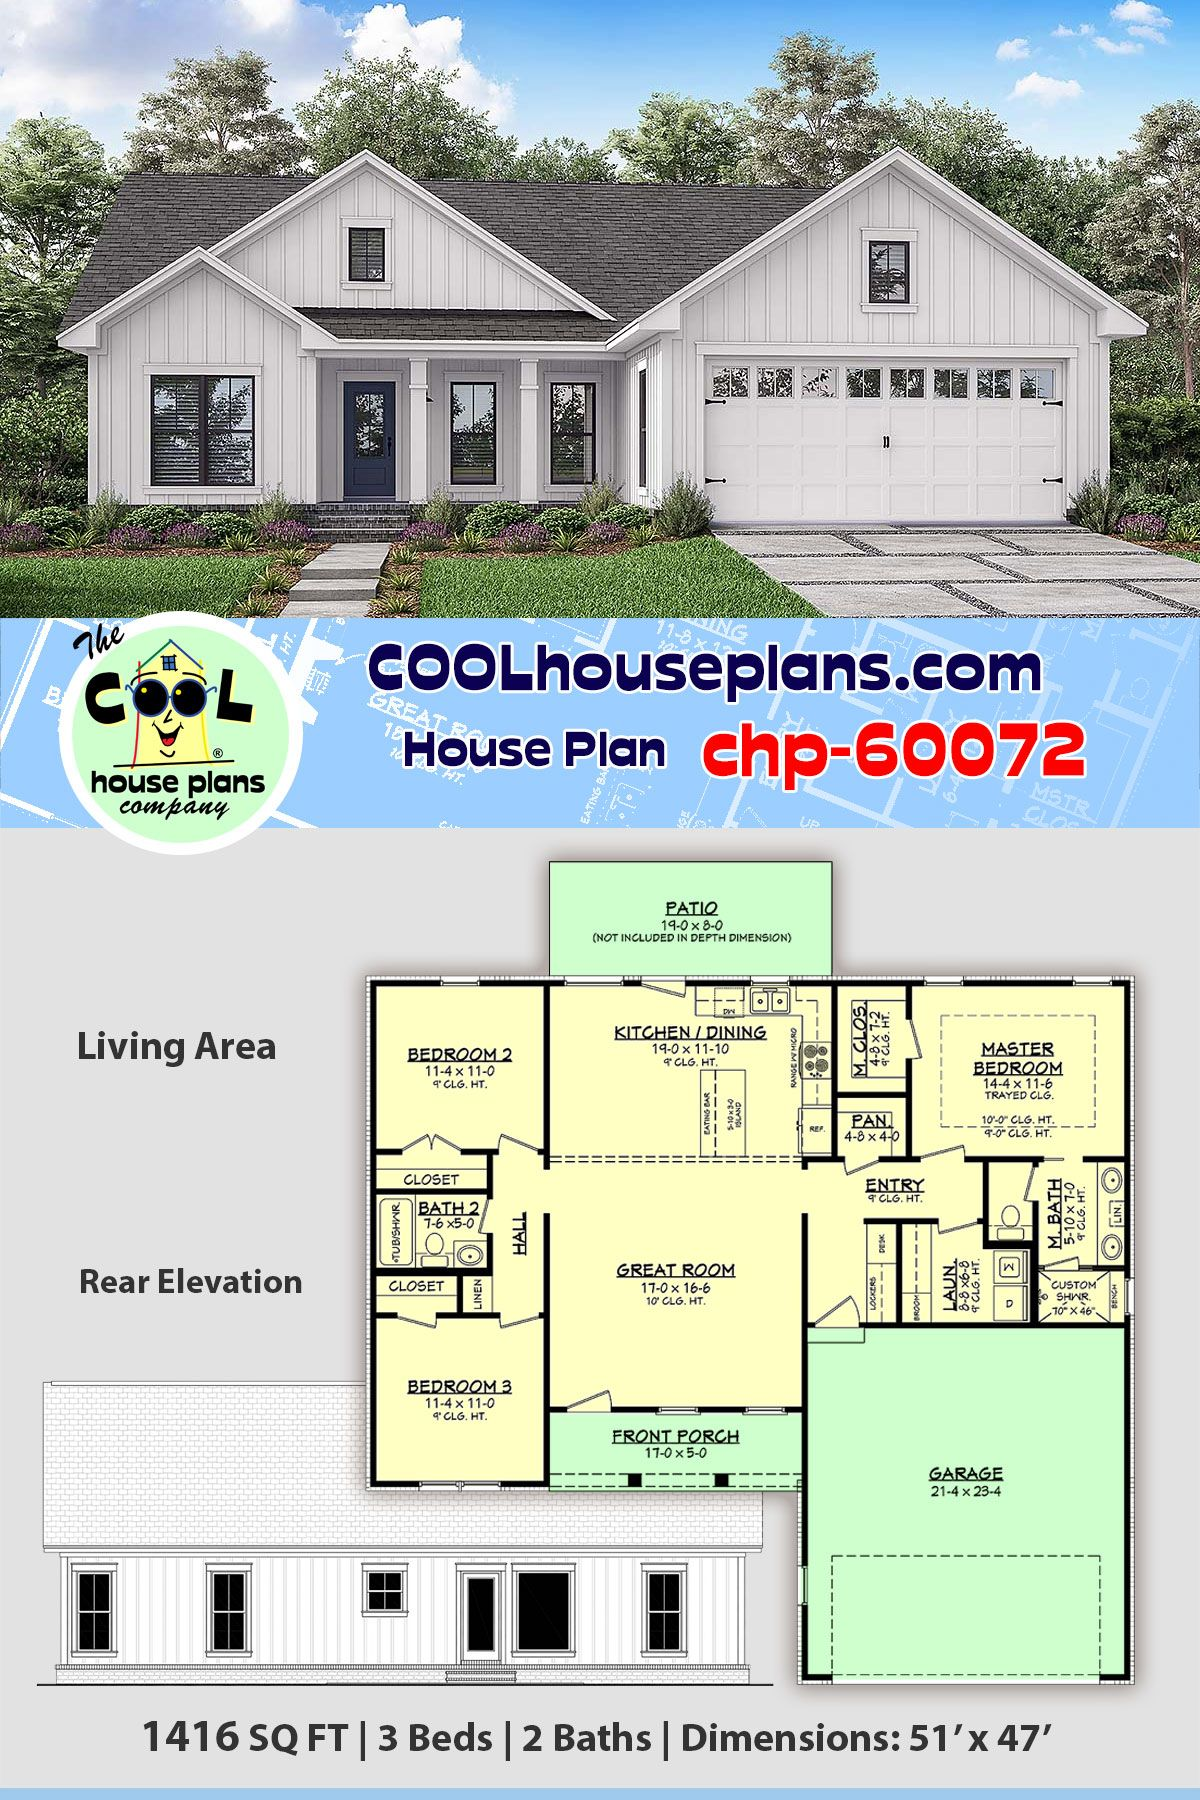 Small Country Home Plan Chp 60072 Is 1416 Sq Ft 3 Bed And 2 Bath With Open Floor Plan House Plans Country House Plans House Plans Farmhouse